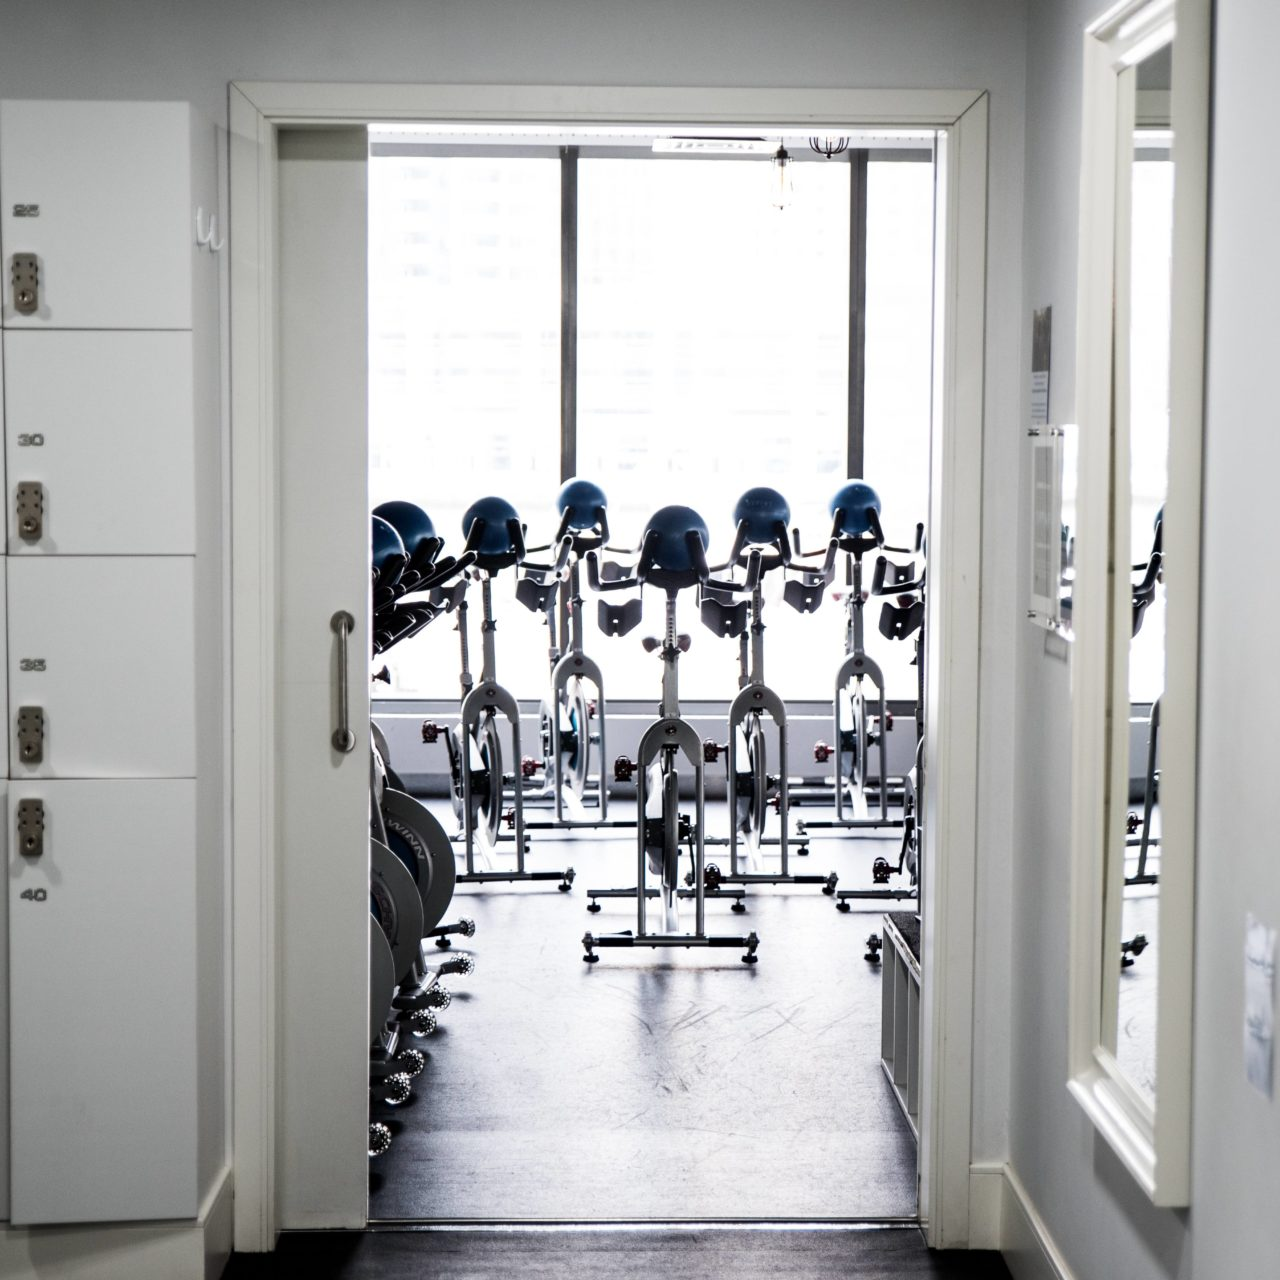 UAE fitness studios respond to Covid-19 by renting out their equipment